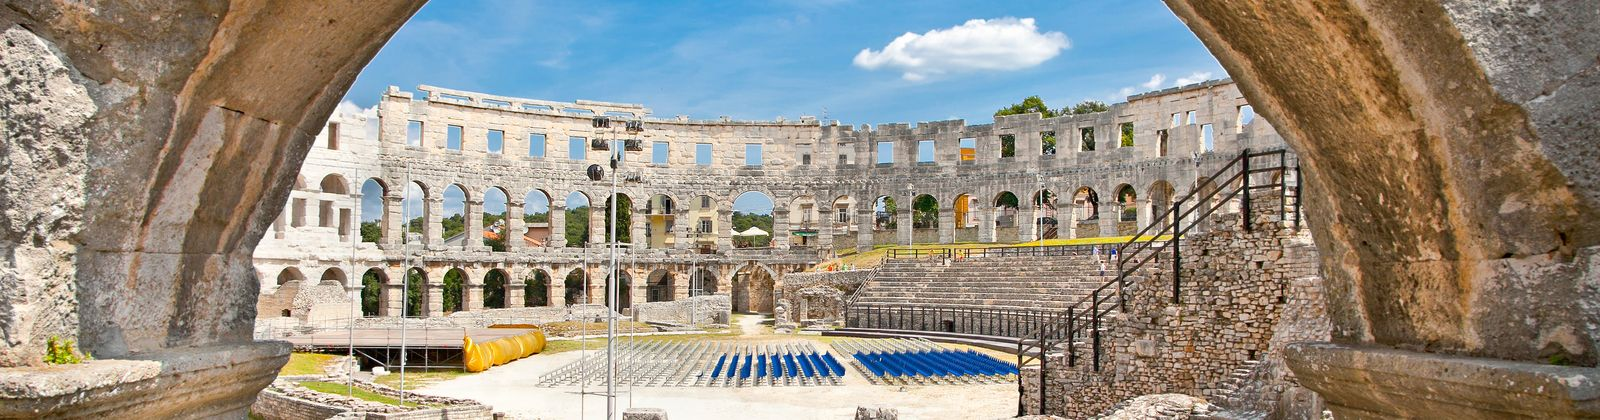 how to get to pula croatia